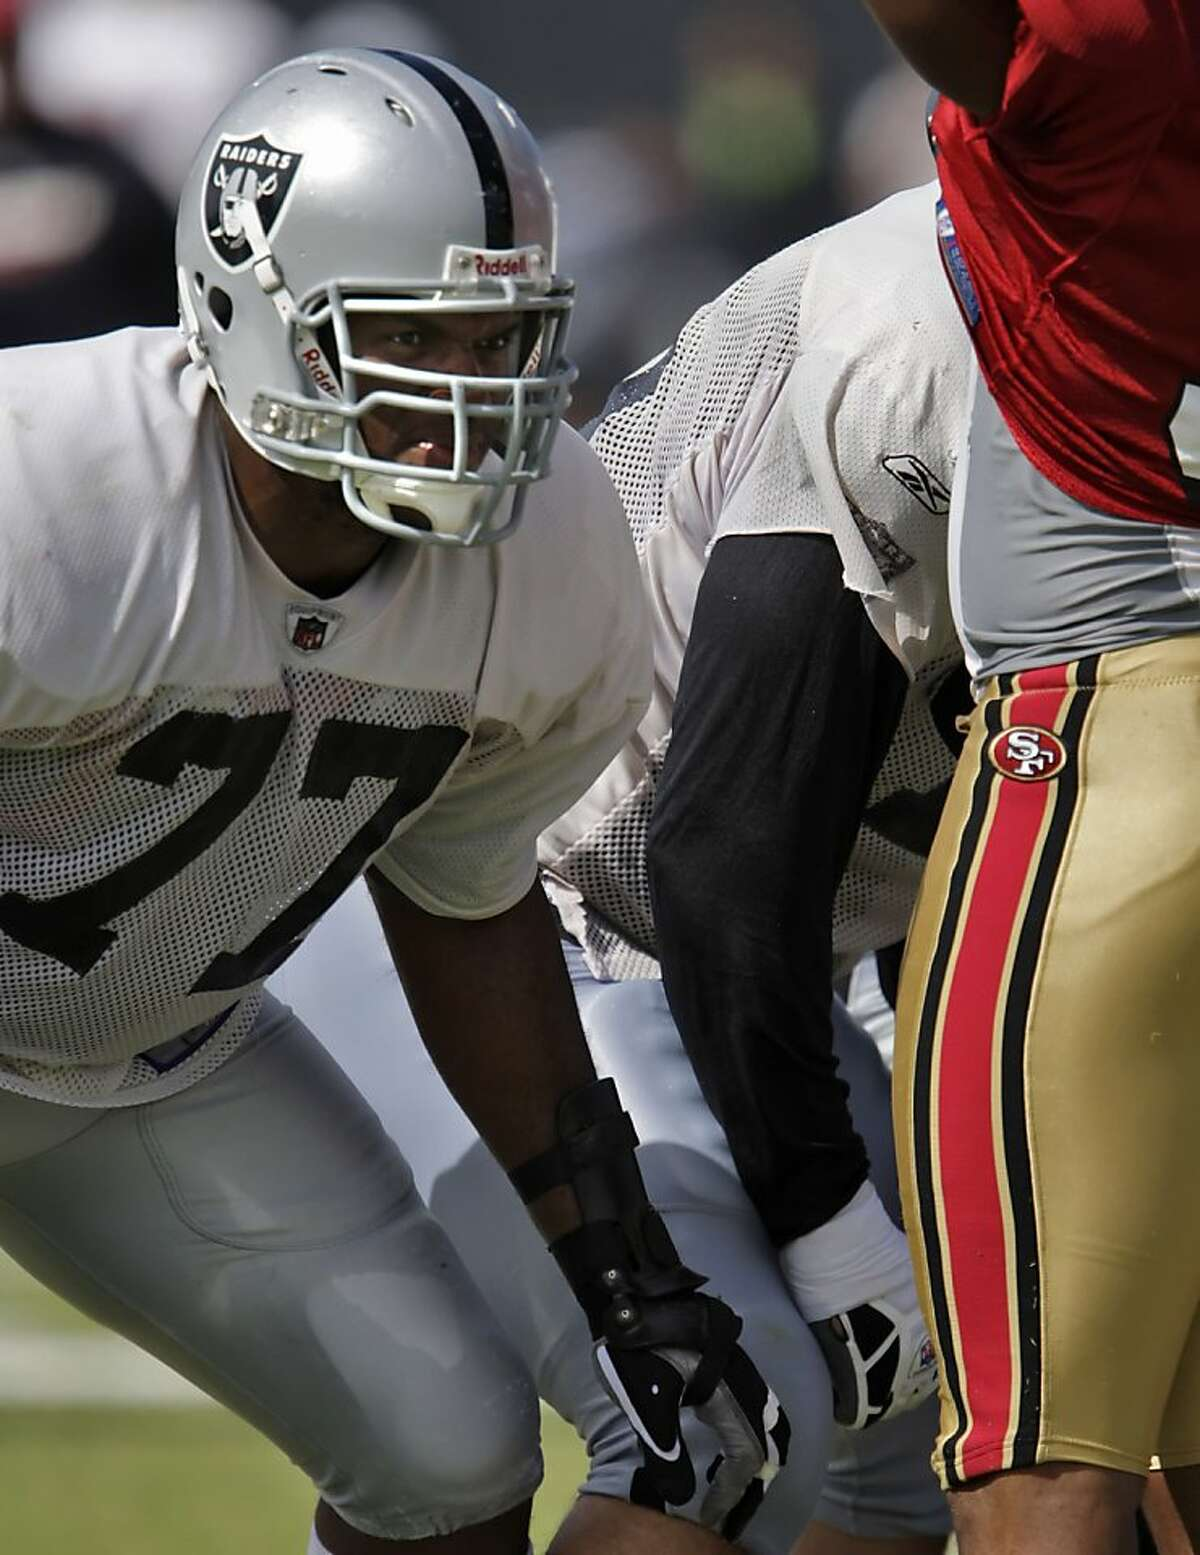 Raiders new left tackle, Kwame Harris. 49ers and Raiders practice against each other at the Raiders Napa training camp on Monday, August 4, 2008.